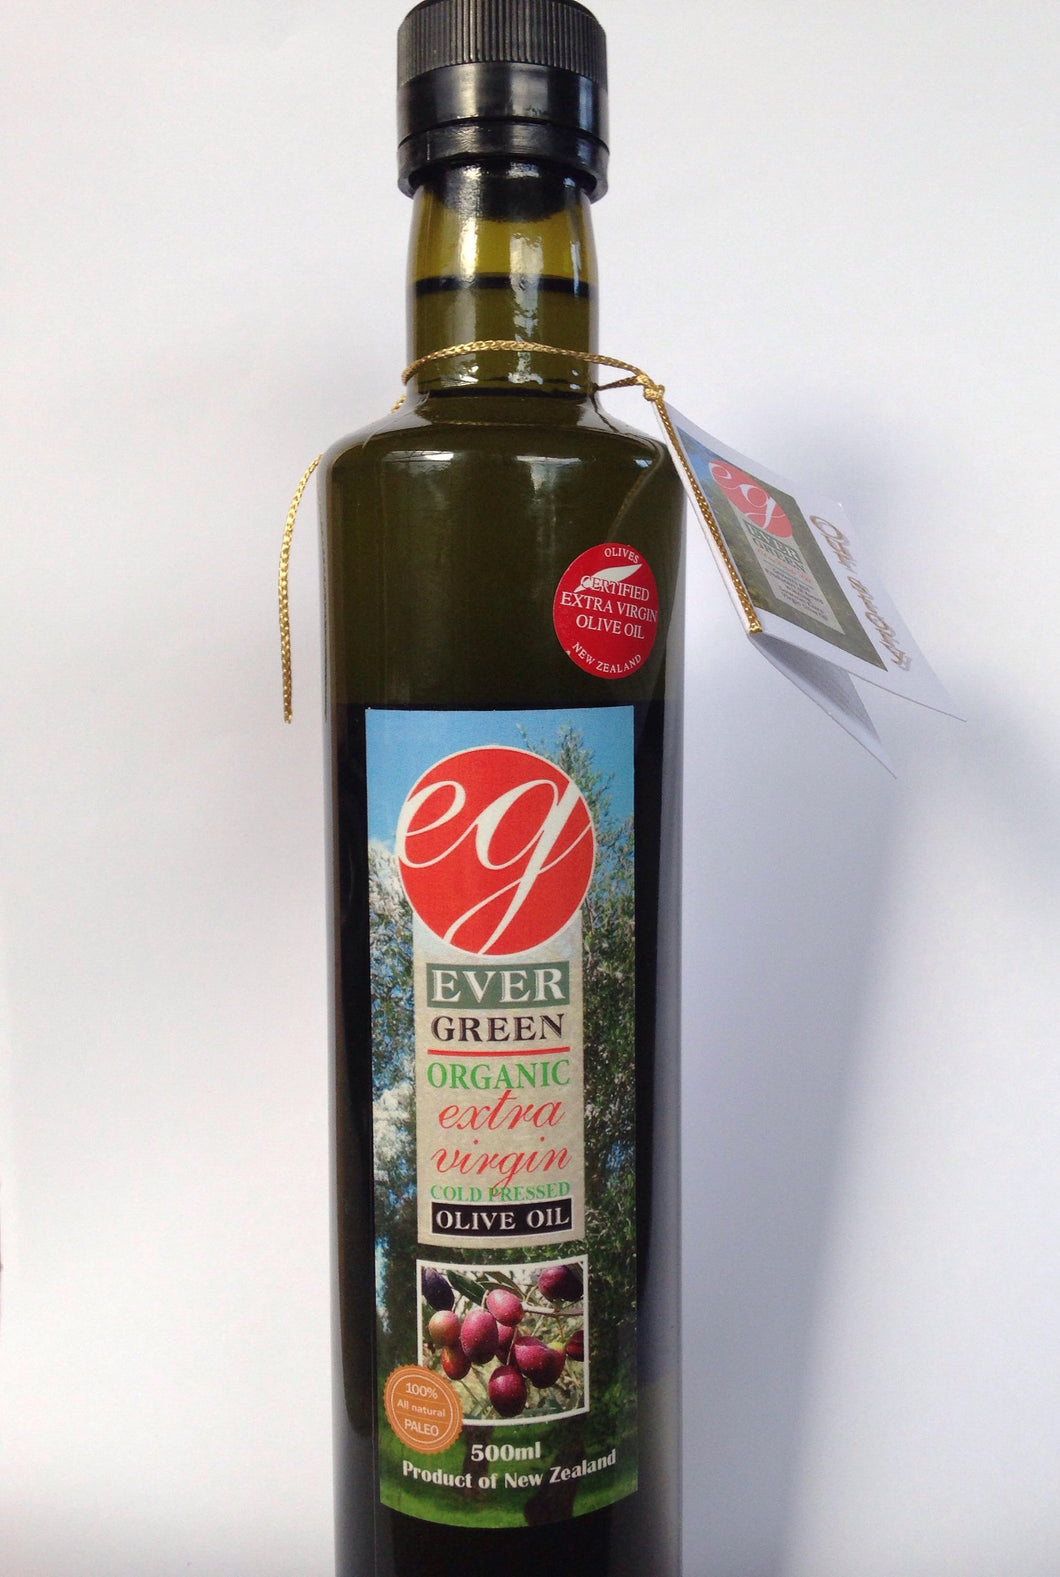 Evergreen, 500ml Premium Organic Extra Virgin Olive Oil, Kaikohe, NZ - twisted-tree-nz-olive-oil